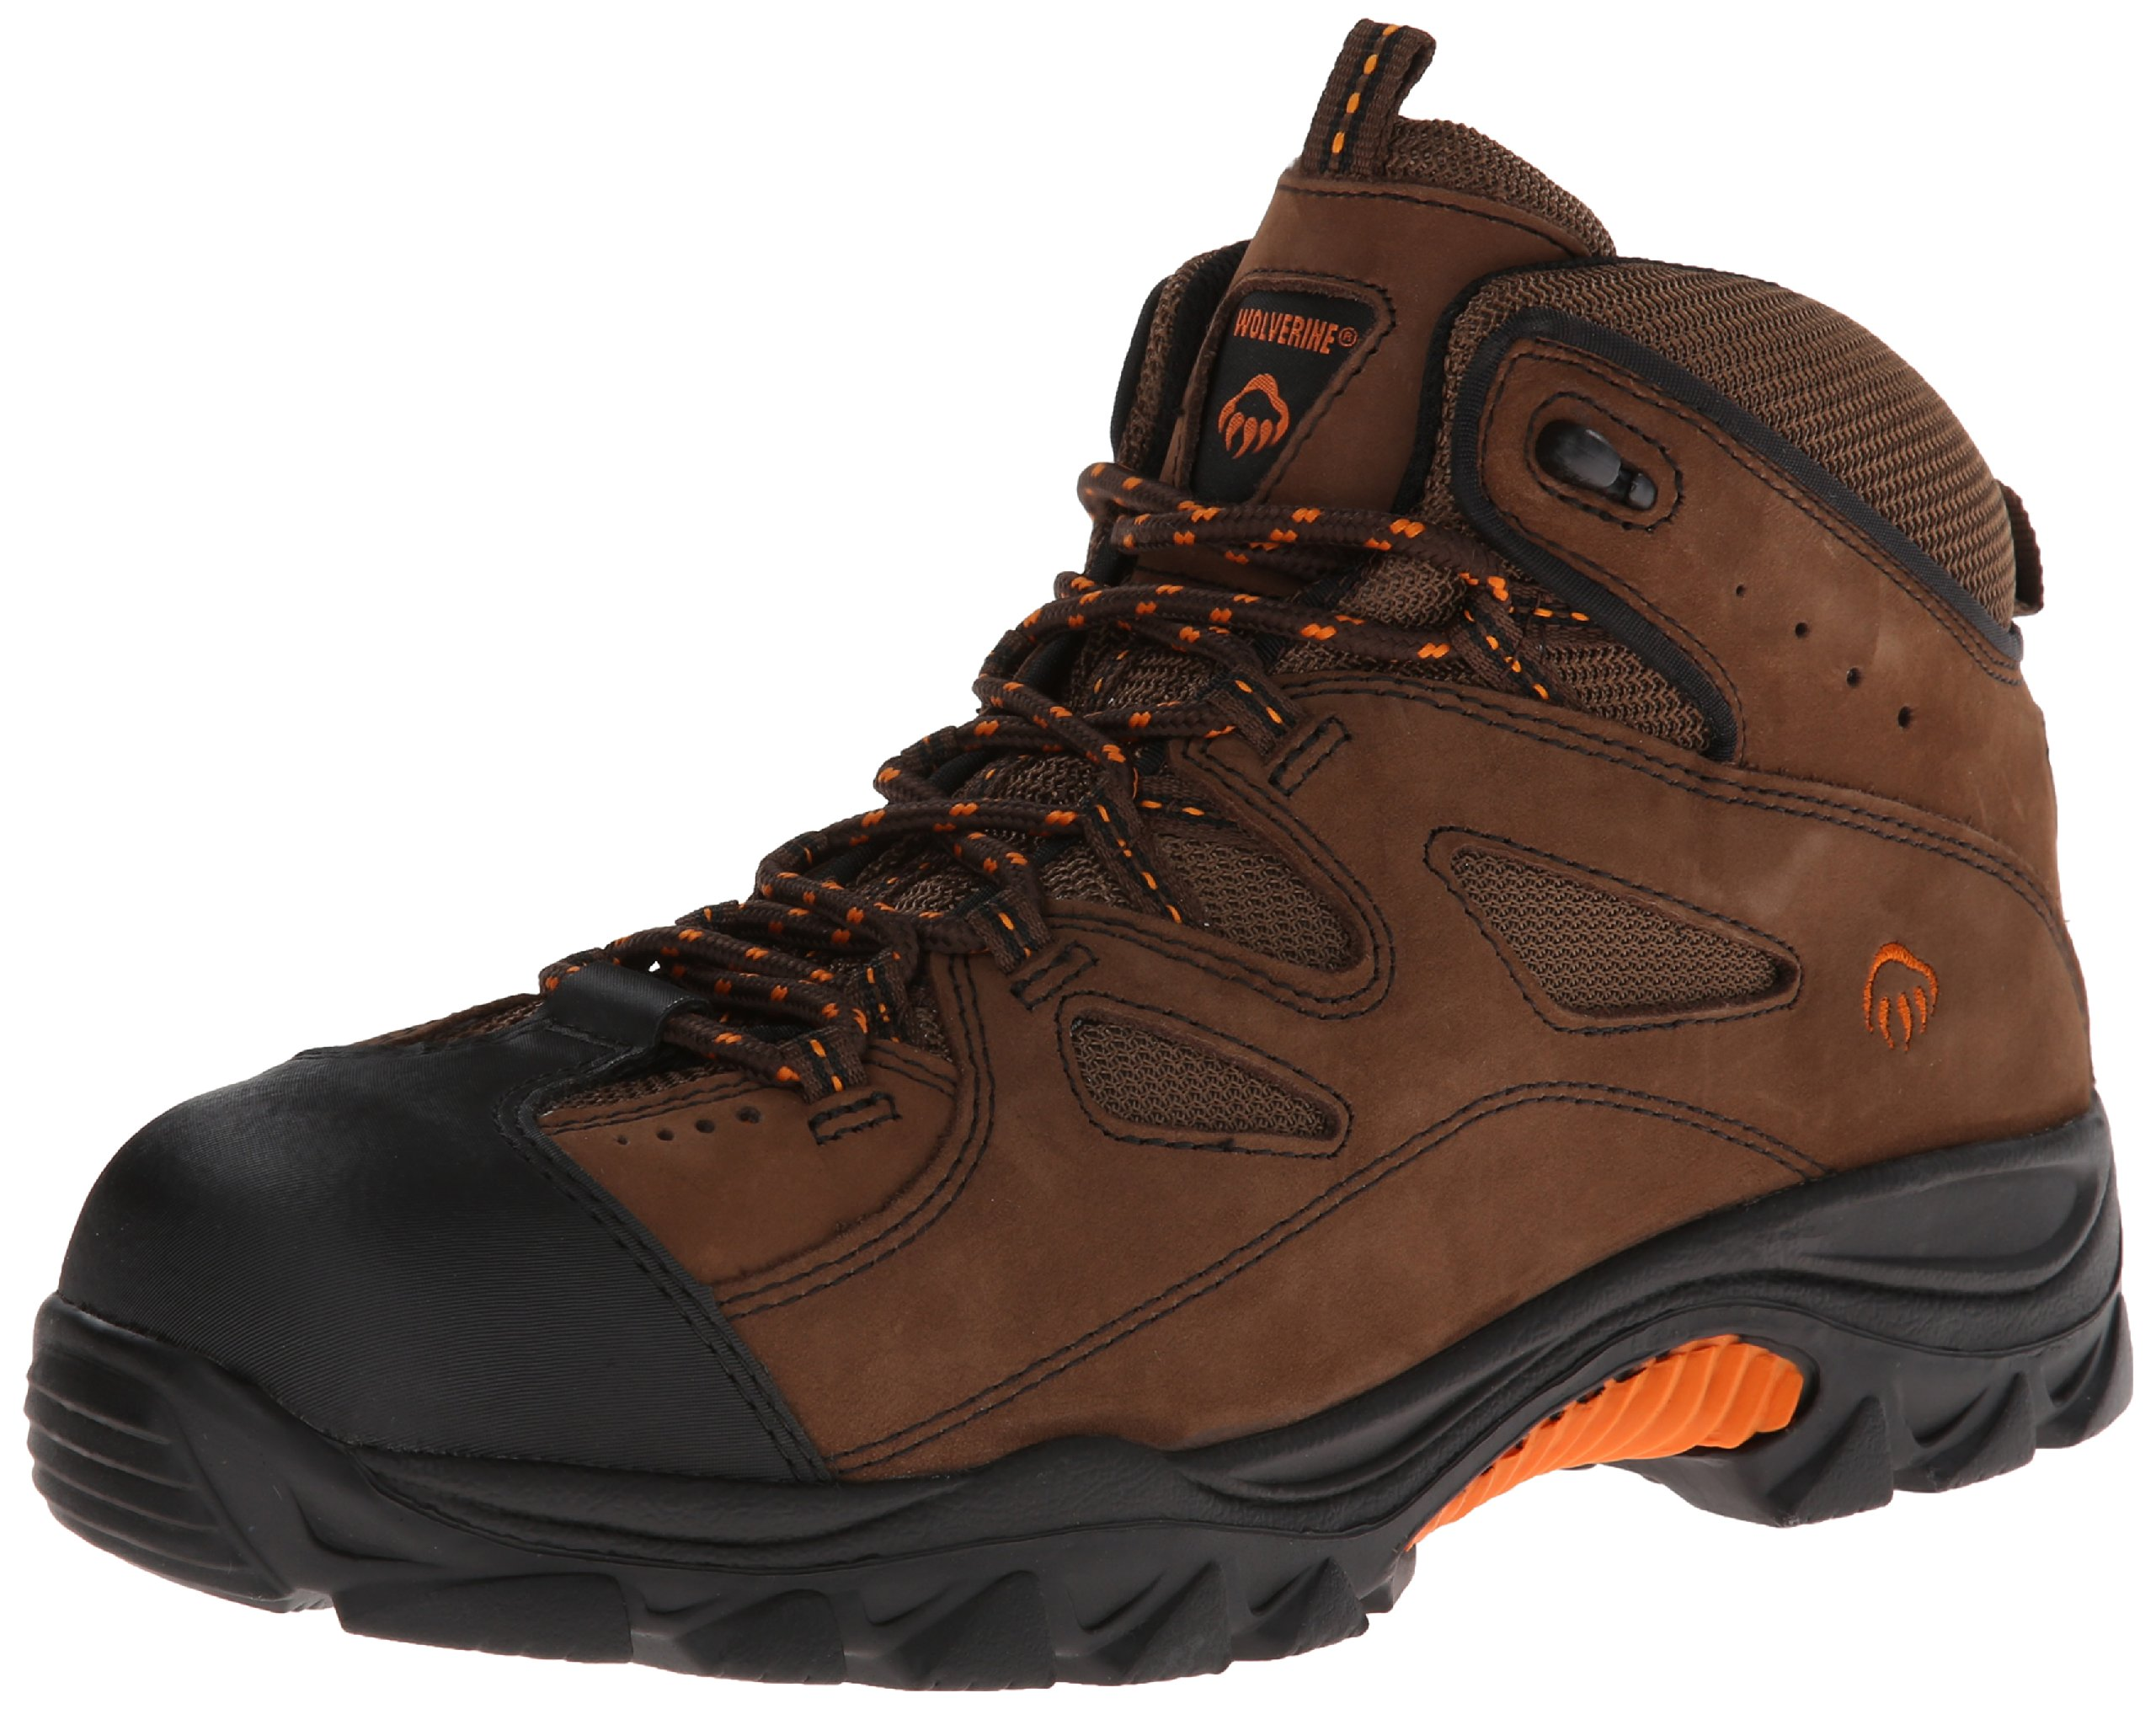 Wolverine Men's W02194 Hudson Boot, Brown/Black, 11.5 M US